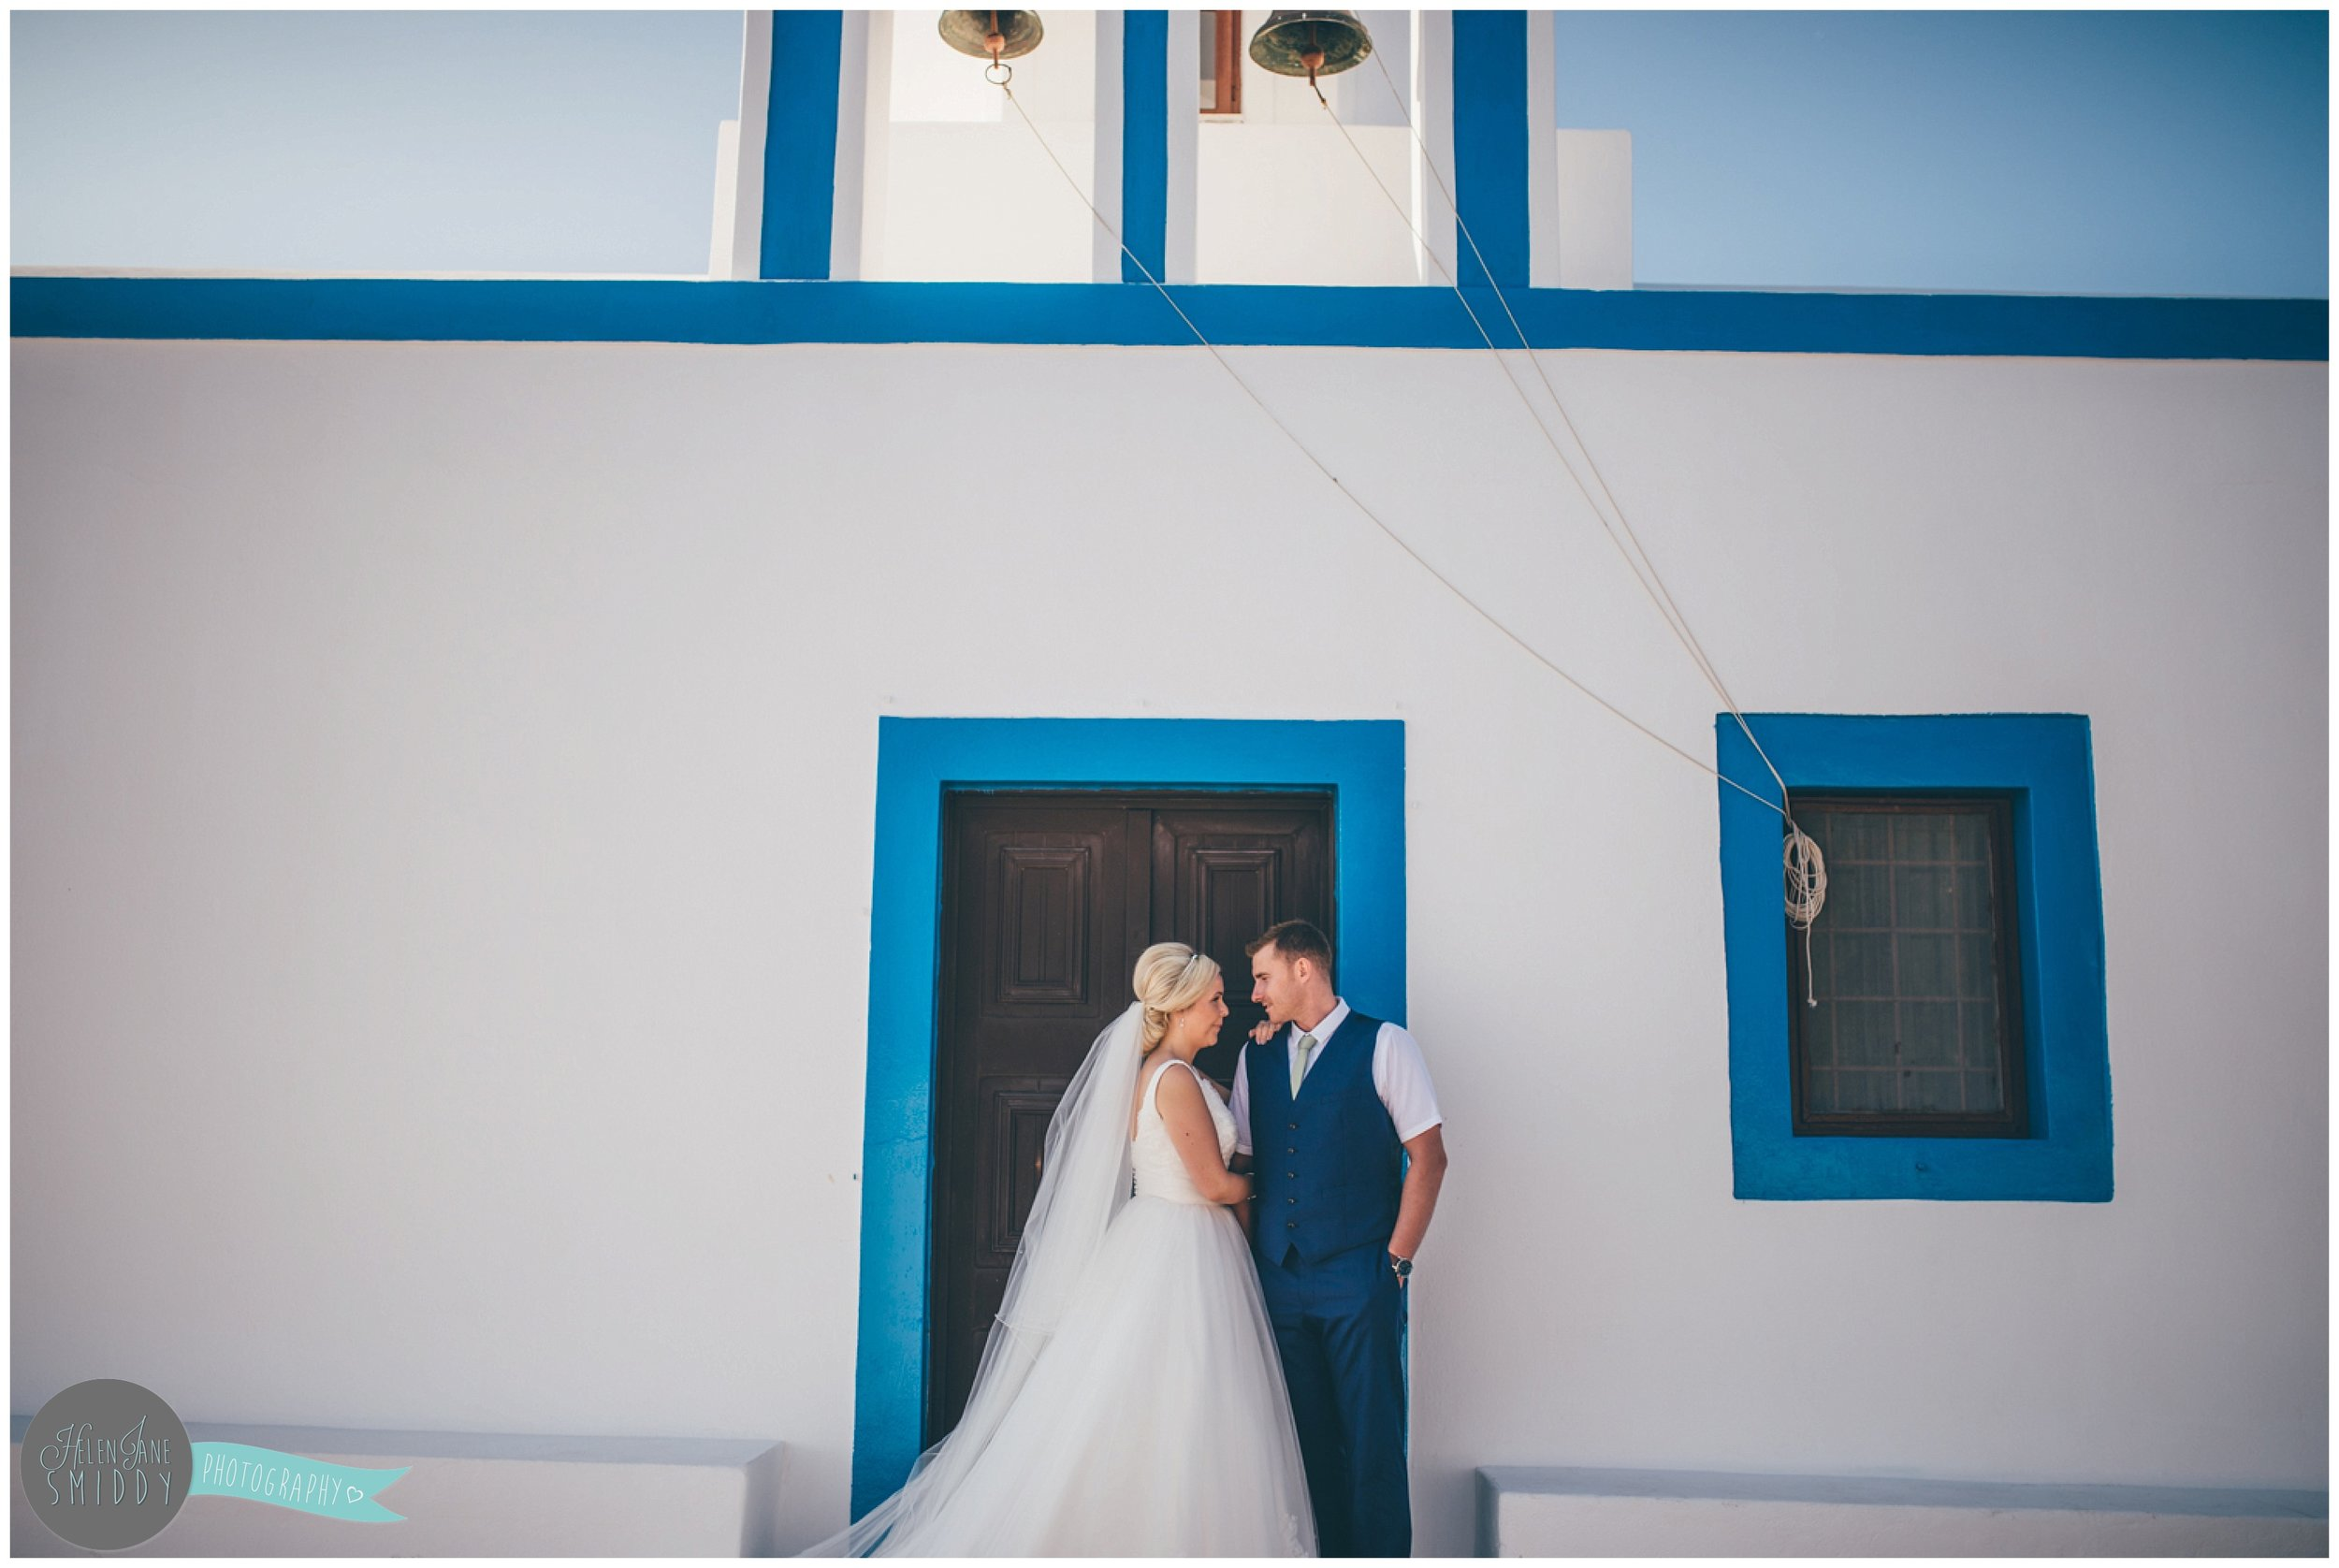 wedding-weddingphotography-photography-destination-wedding-destinationweddingphotography-destinationphotographer-santorini-greece-santoriniwedding-cheshirewedding-cheshireweddinphotographer-cheshireweddingphotography-fira-thira-travel-travelphotographer-travelphotography-bluefroofs